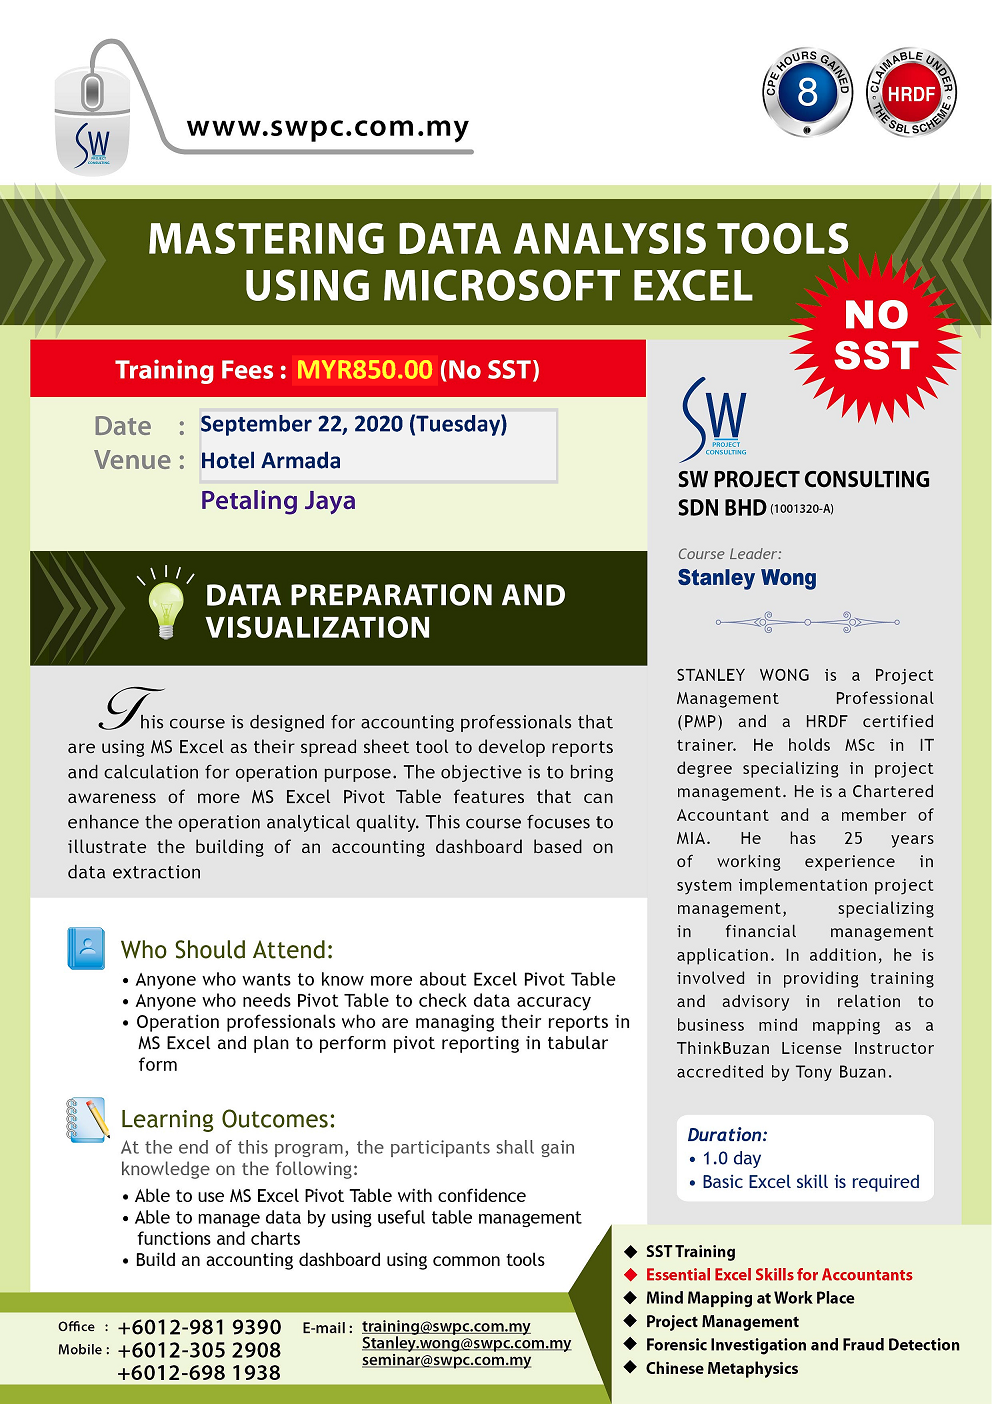 Mastering Data Analysis Tools using Microsoft Excel